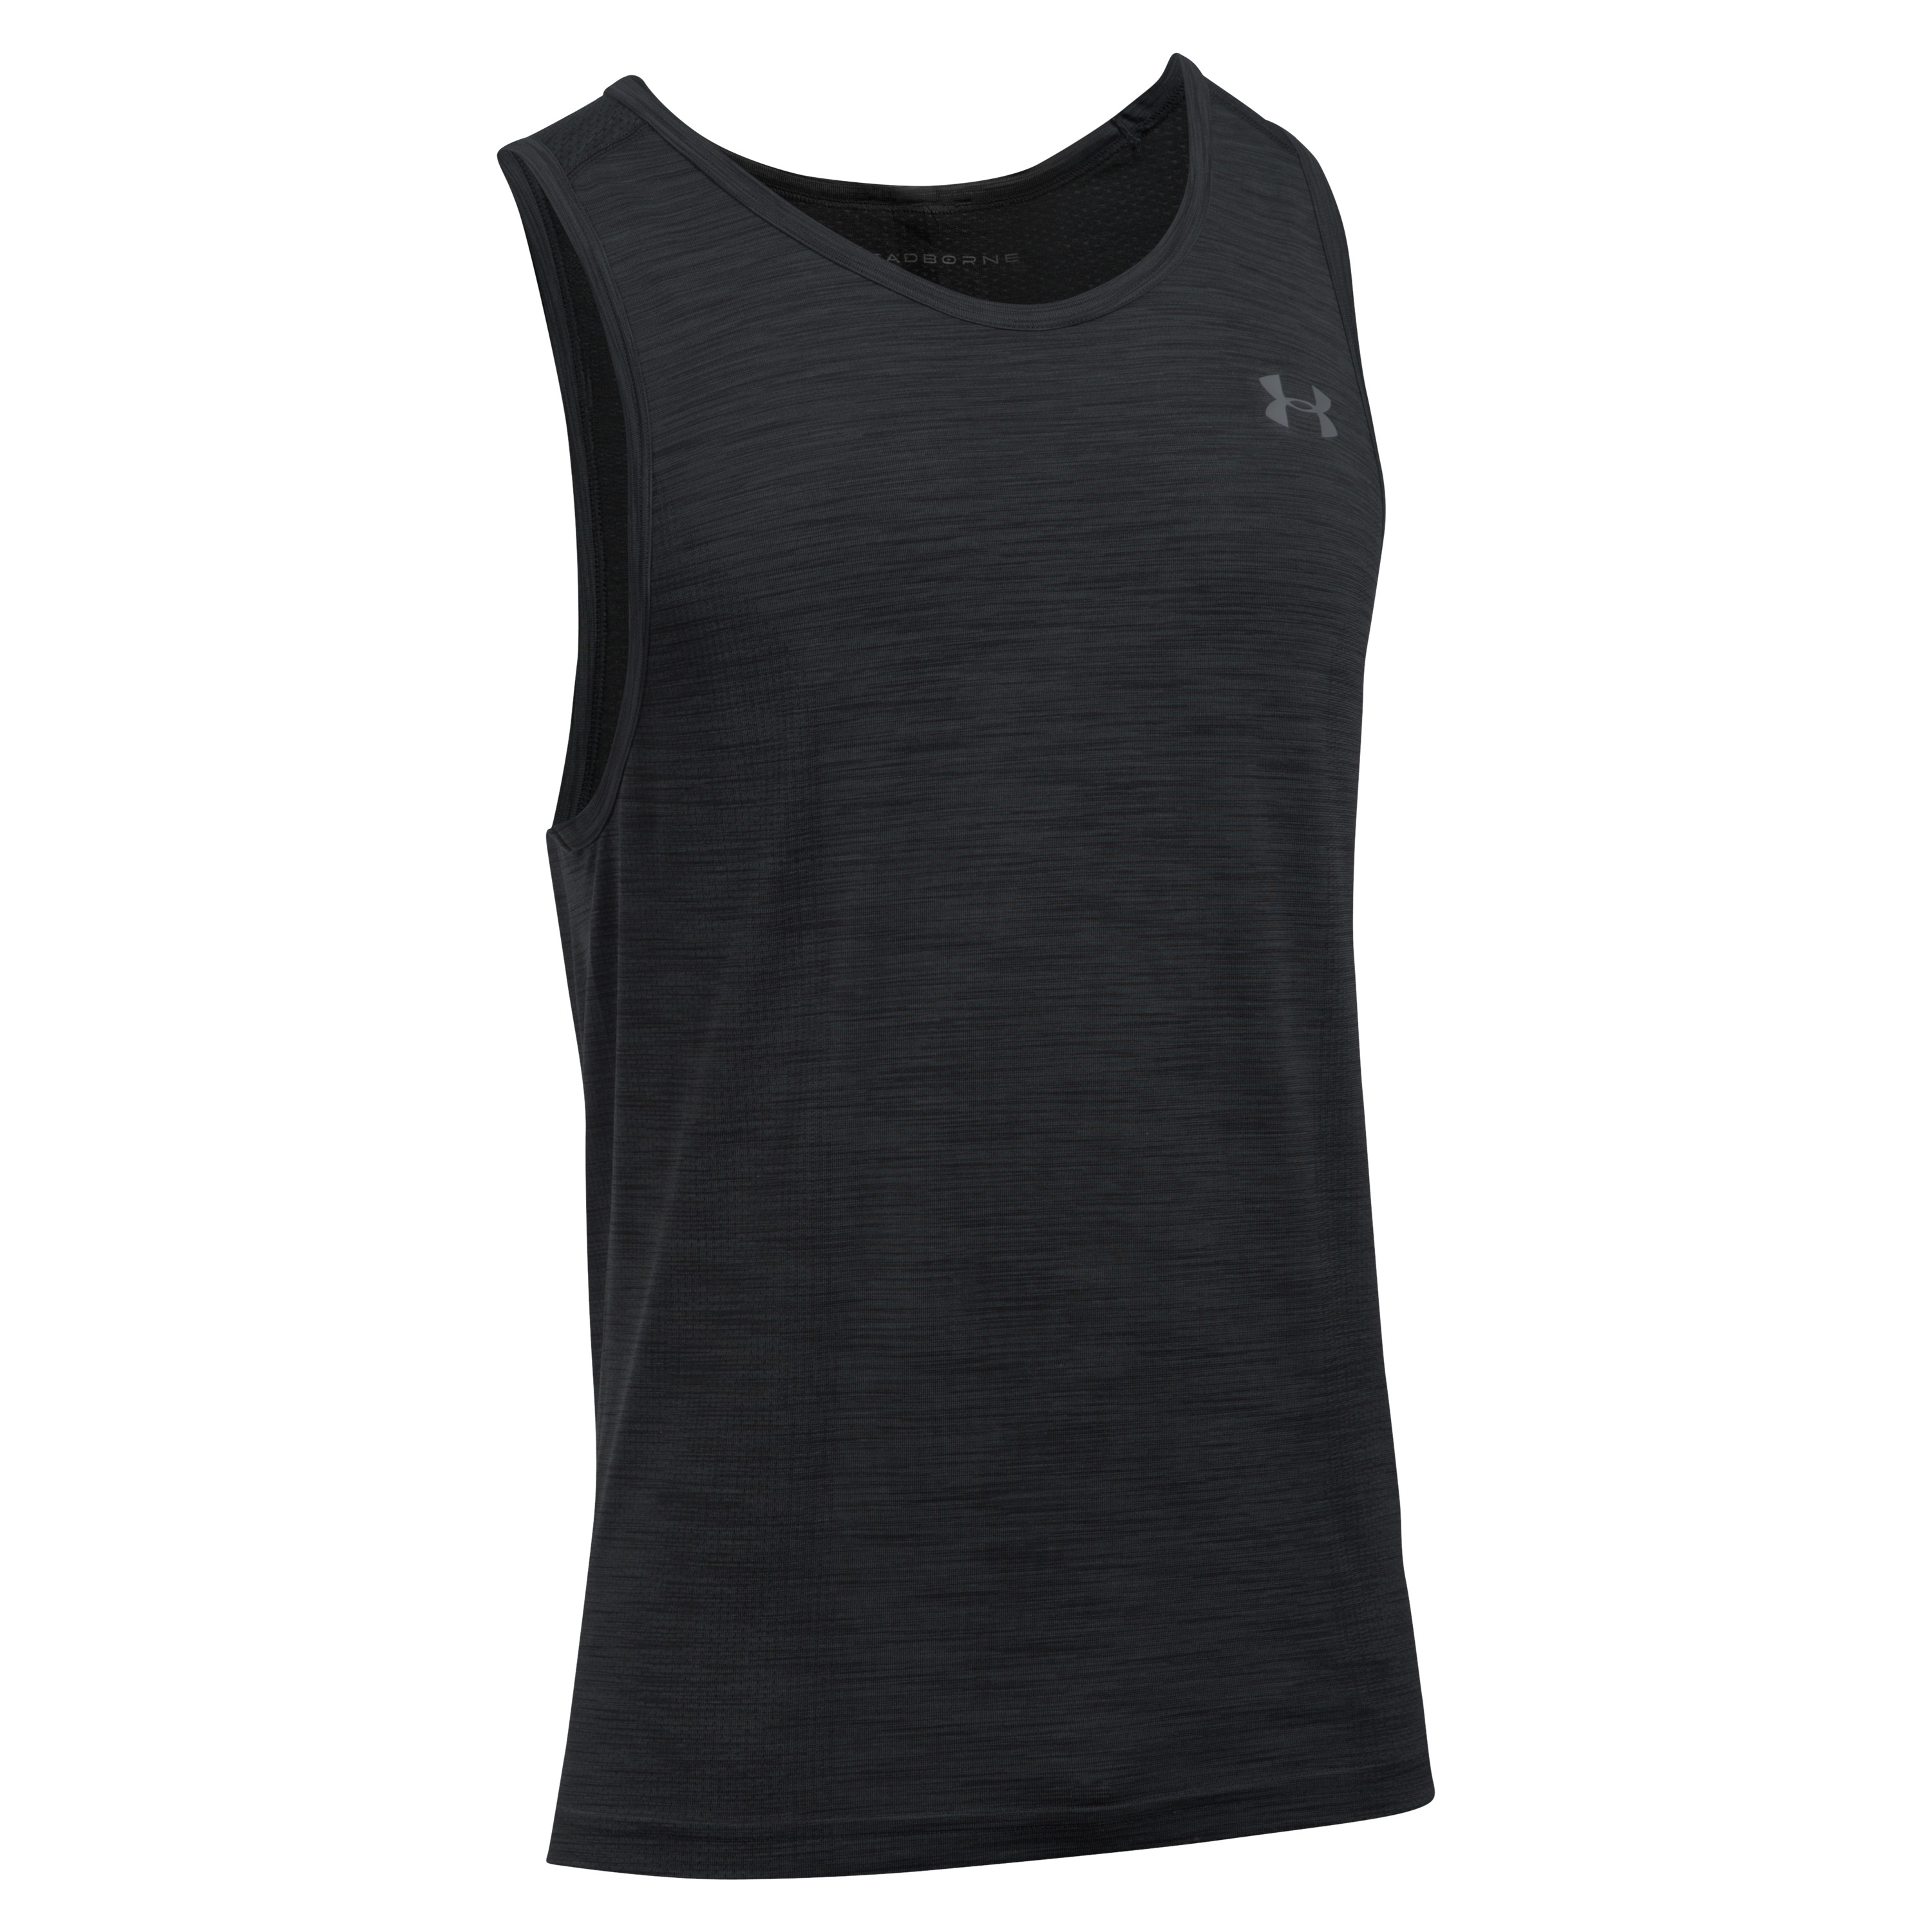 Camiseta sin mangas Under Armour Threadborne Seamless negra gris